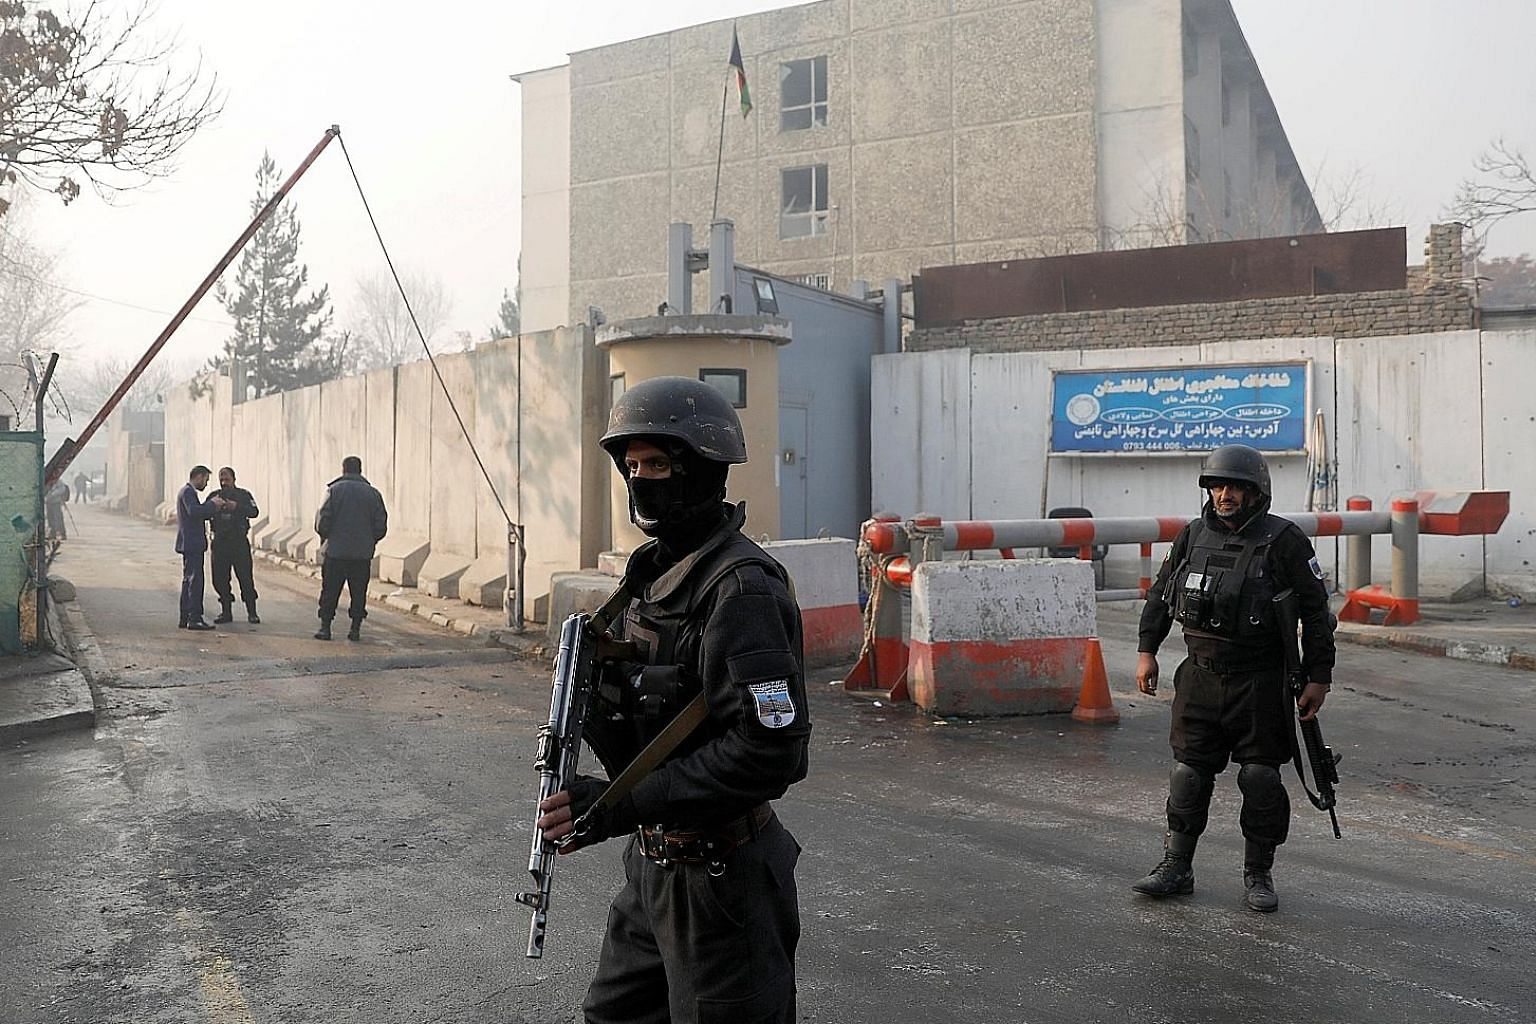 Afghan police officers standing guard outside the government compound in Kabul, after Monday's attack, the first major violent assault in the capital since last month, when a terrorist bomber killed more than 50 people in a hotel.